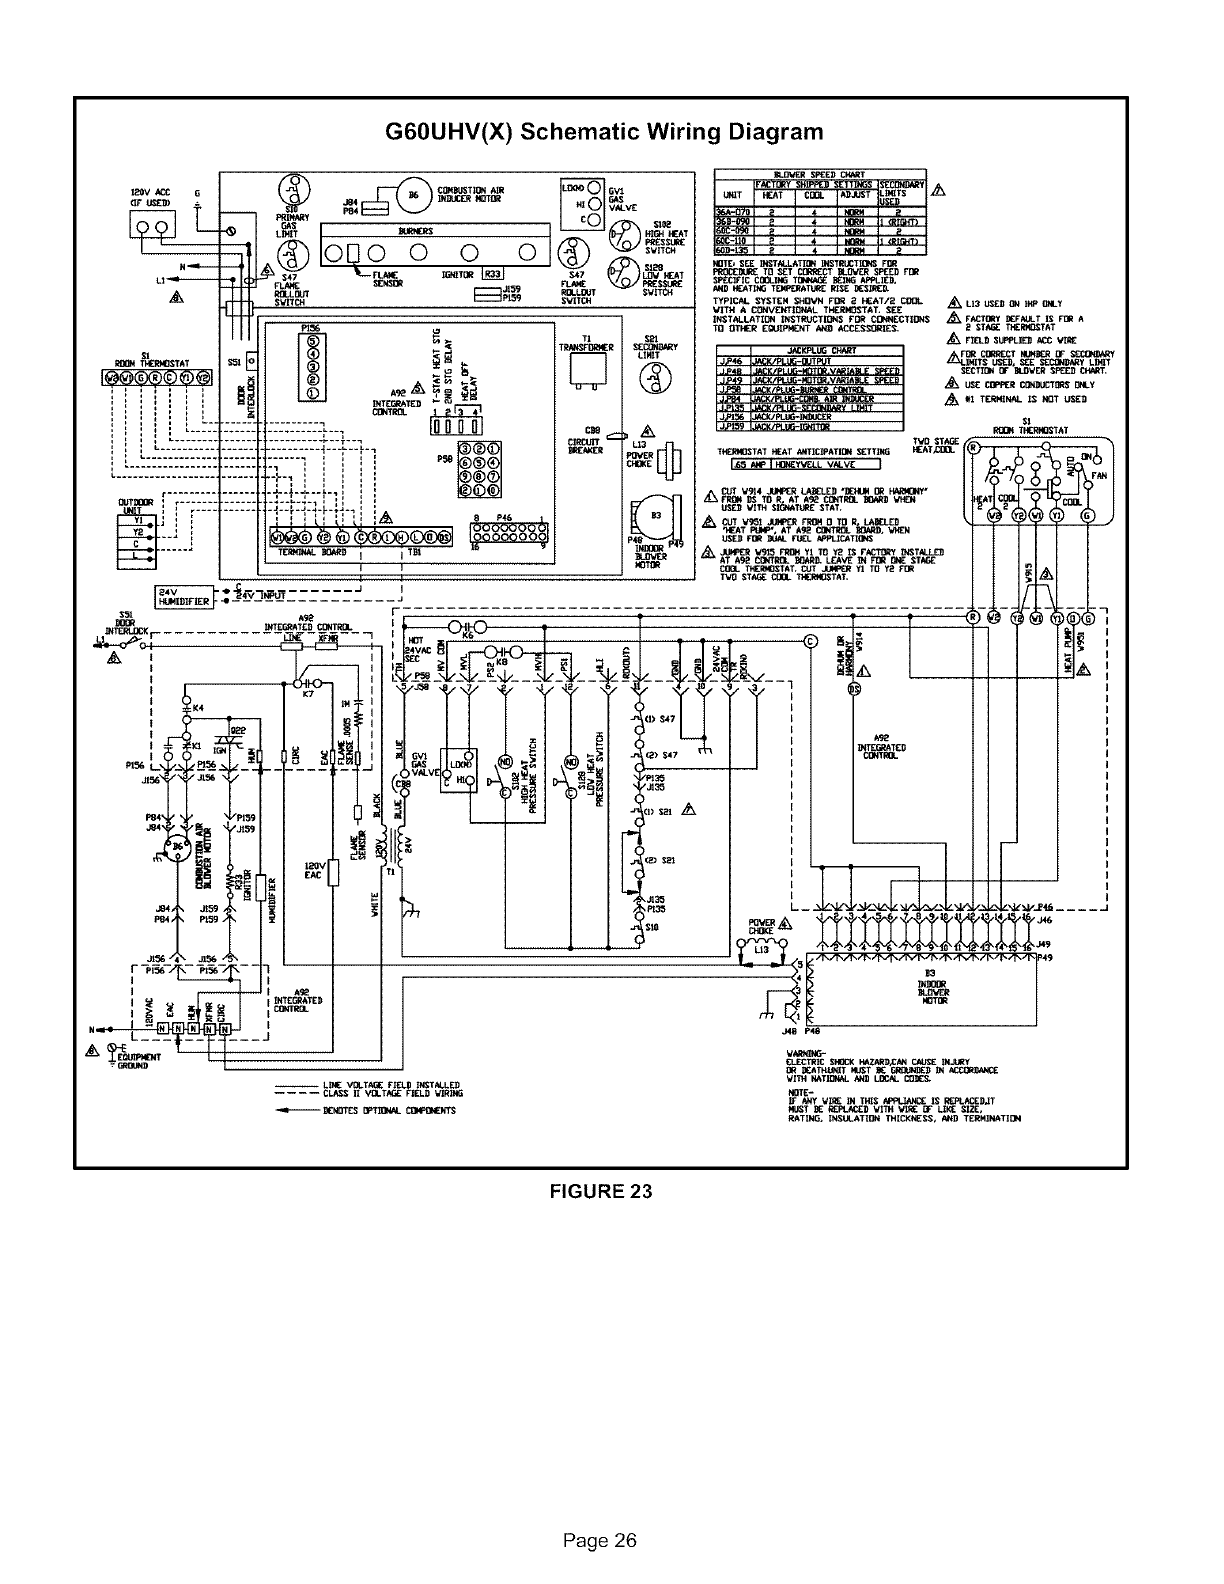 Lennox Furnace Heater Gas Manual L0806201 Thermostat 2 Heat 1 Air Wiring Diagram G60uhvx Schematic